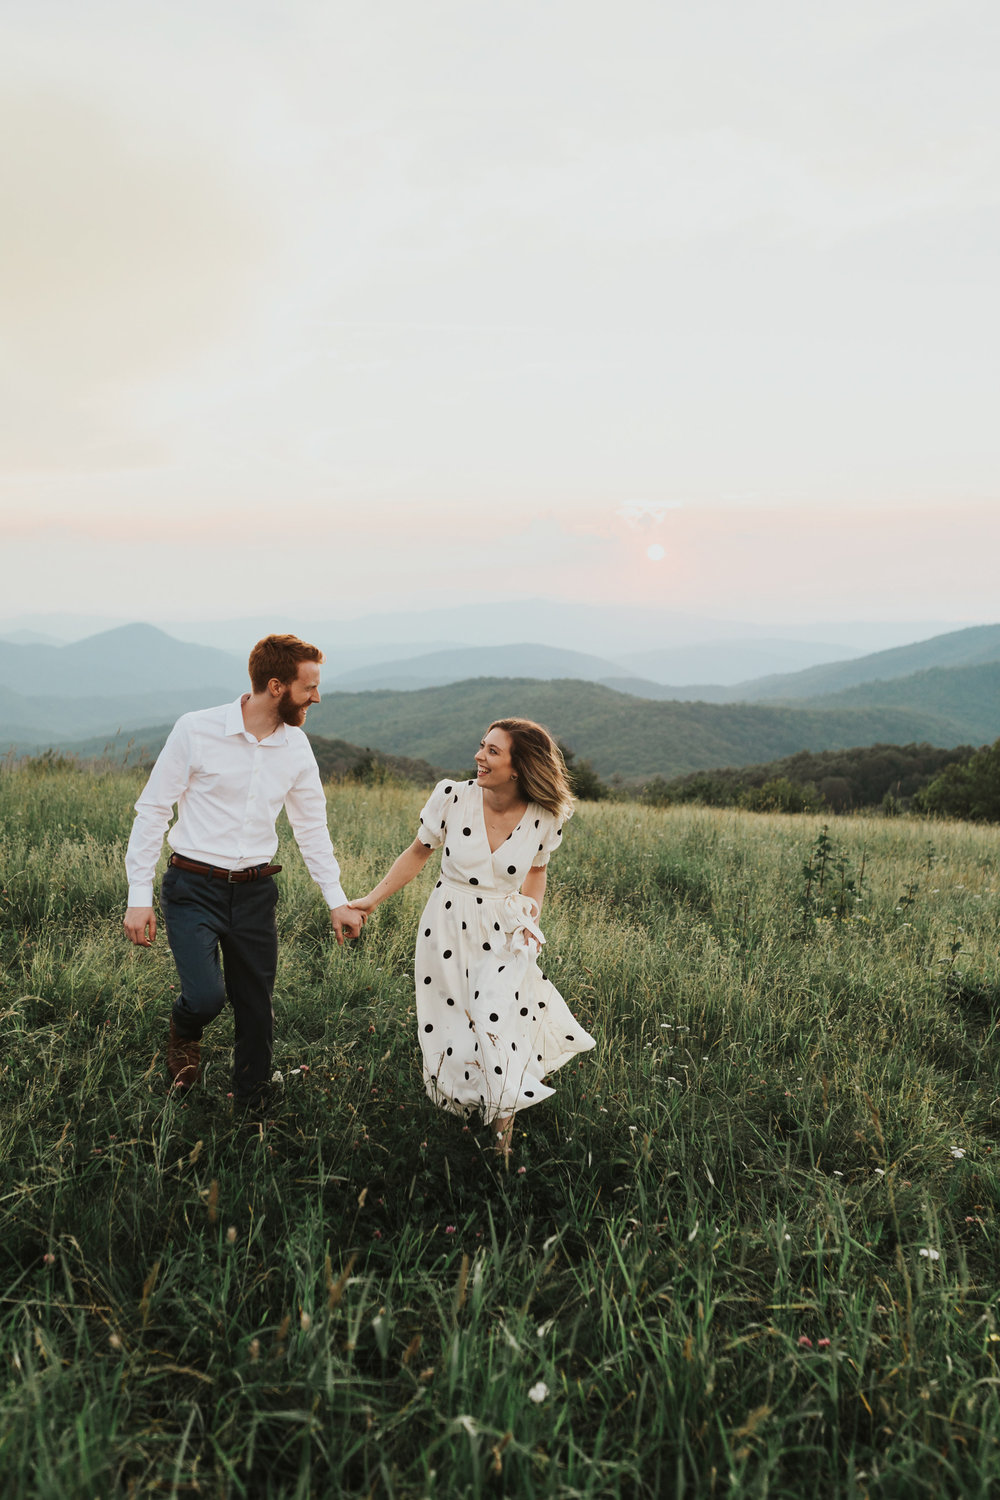 BlueRidgeMountains_NashvilleWeddingPhotographer_MollyPeach_MaxPatch-6327.jpg